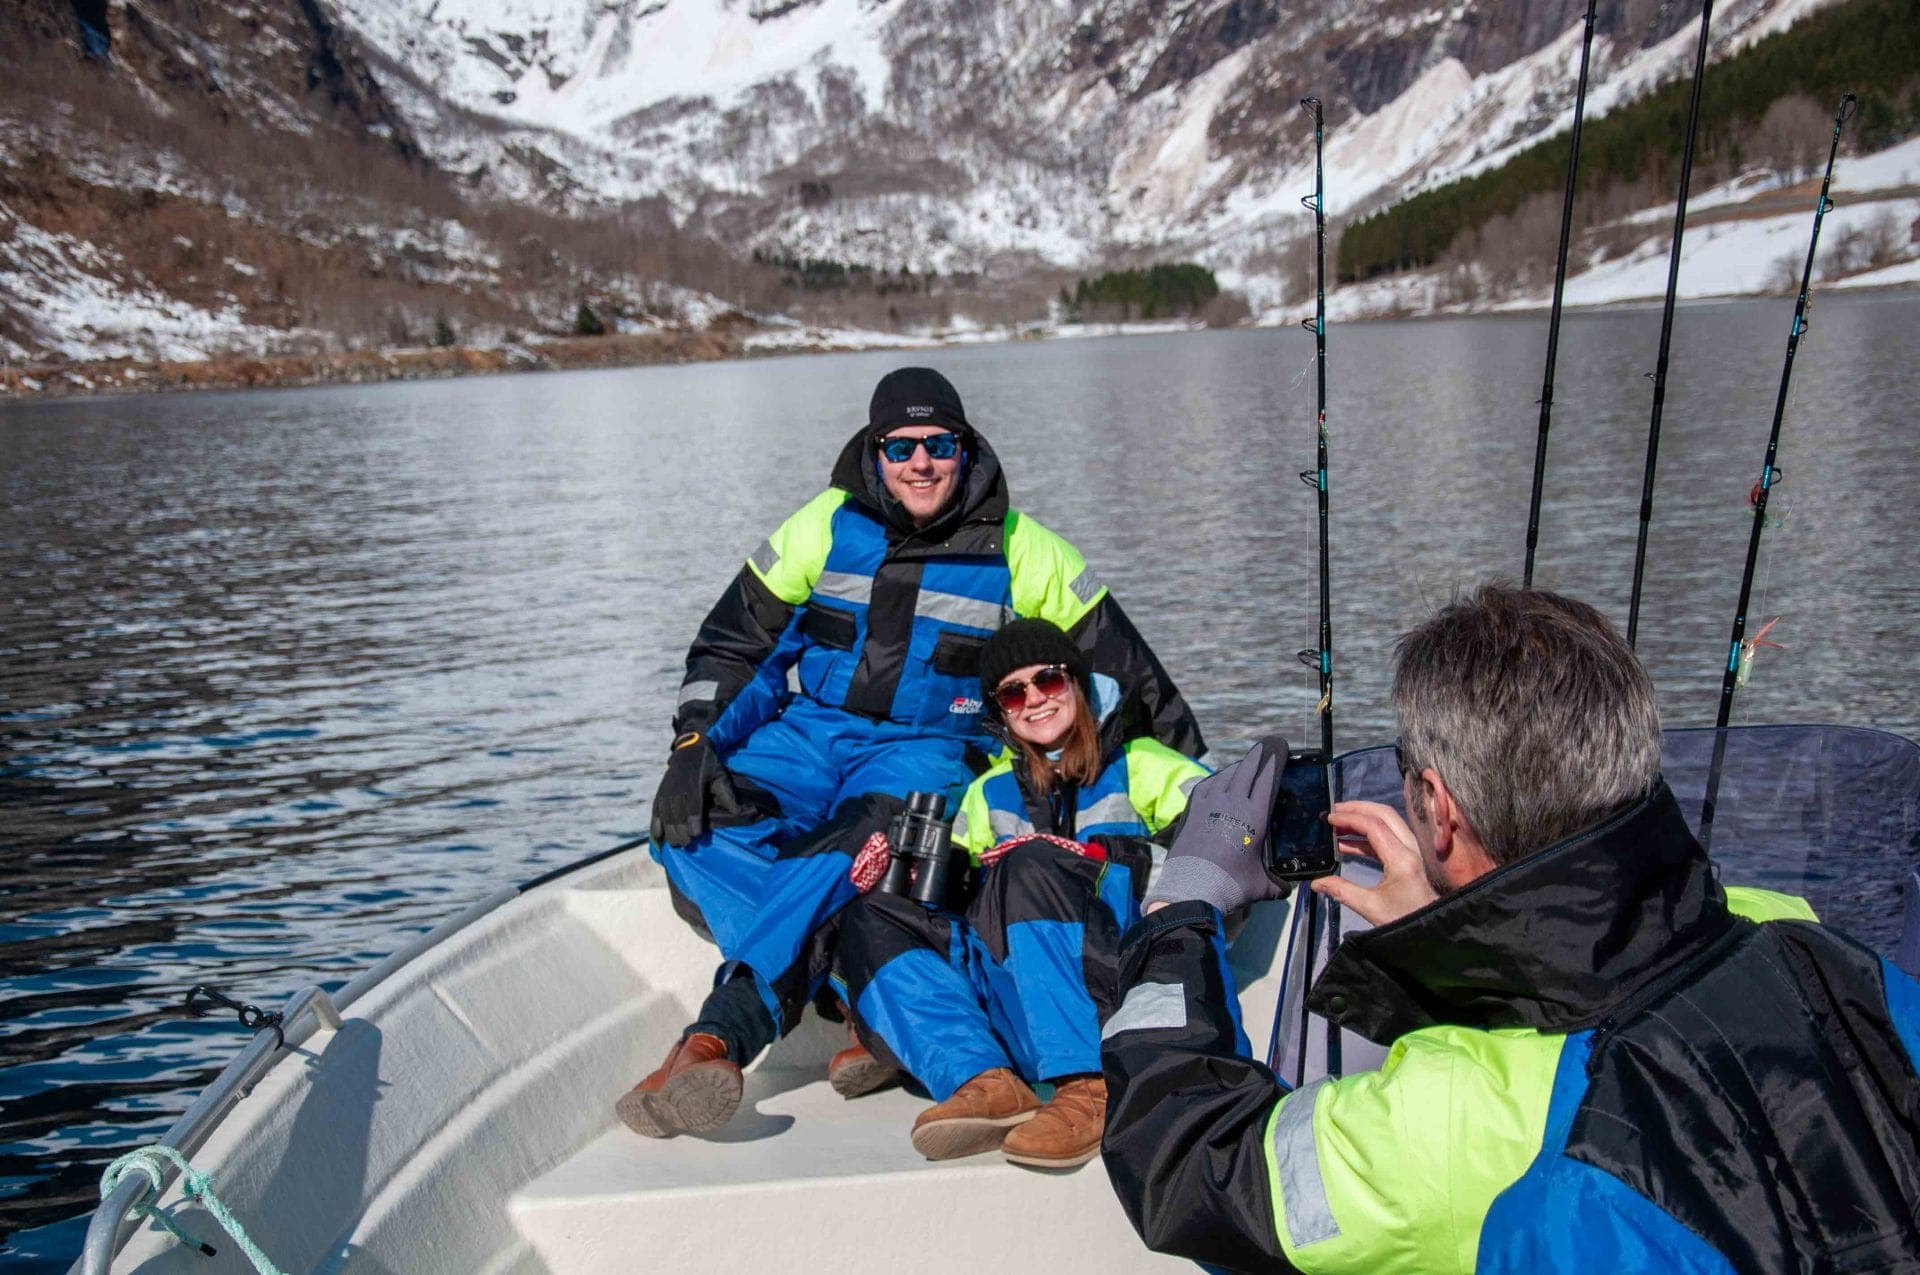 Balestrand Fjord Angling - In a nutshell